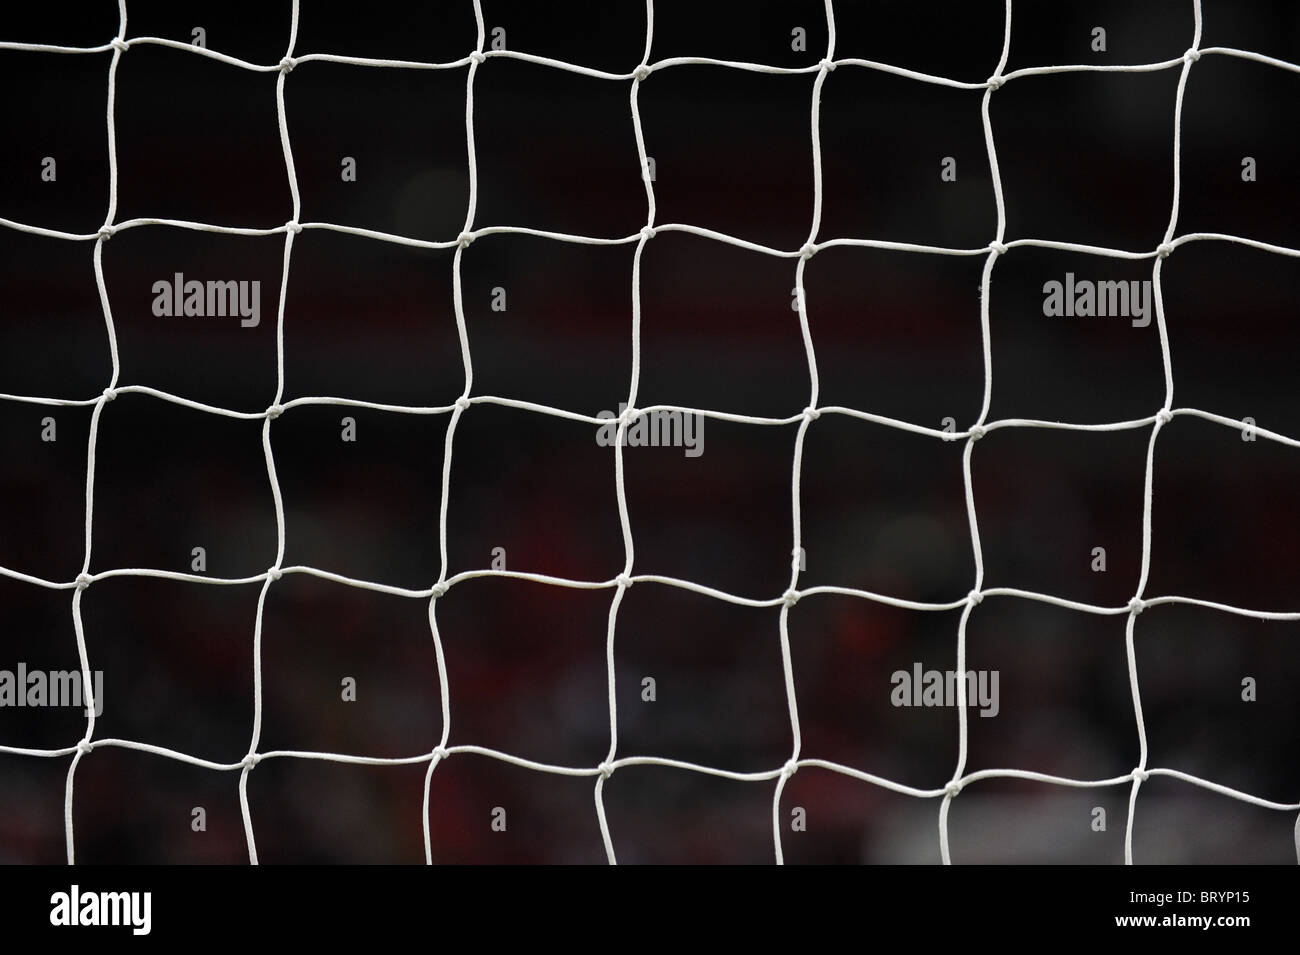 The net from a football goal - Stock Image